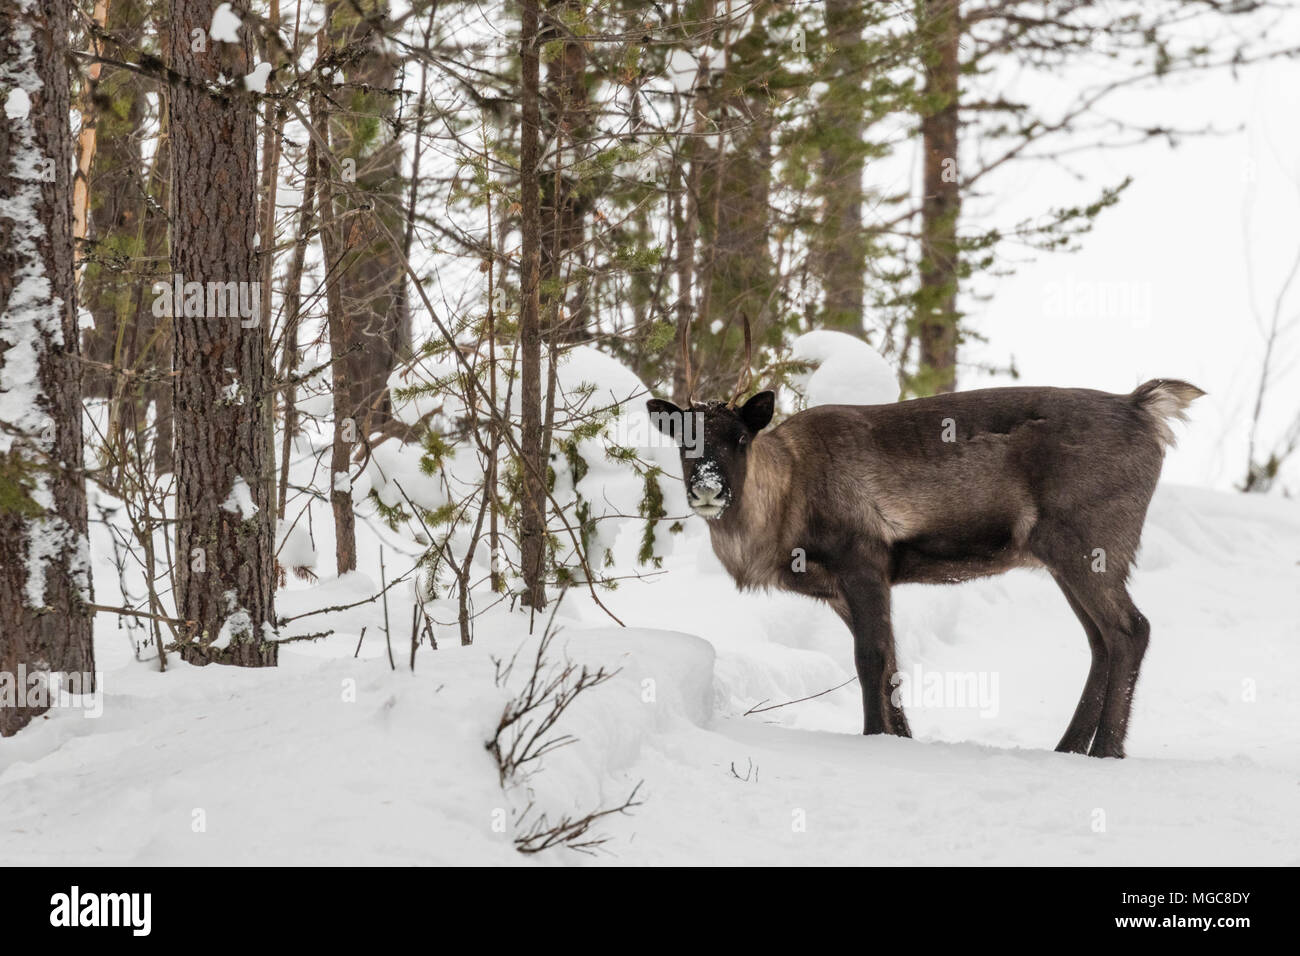 Reindeer, Rangifer tarandus, standing in forest in winter season looking in to the camera, Gällivare county, Swedish Lapland, Sweden - Stock Image